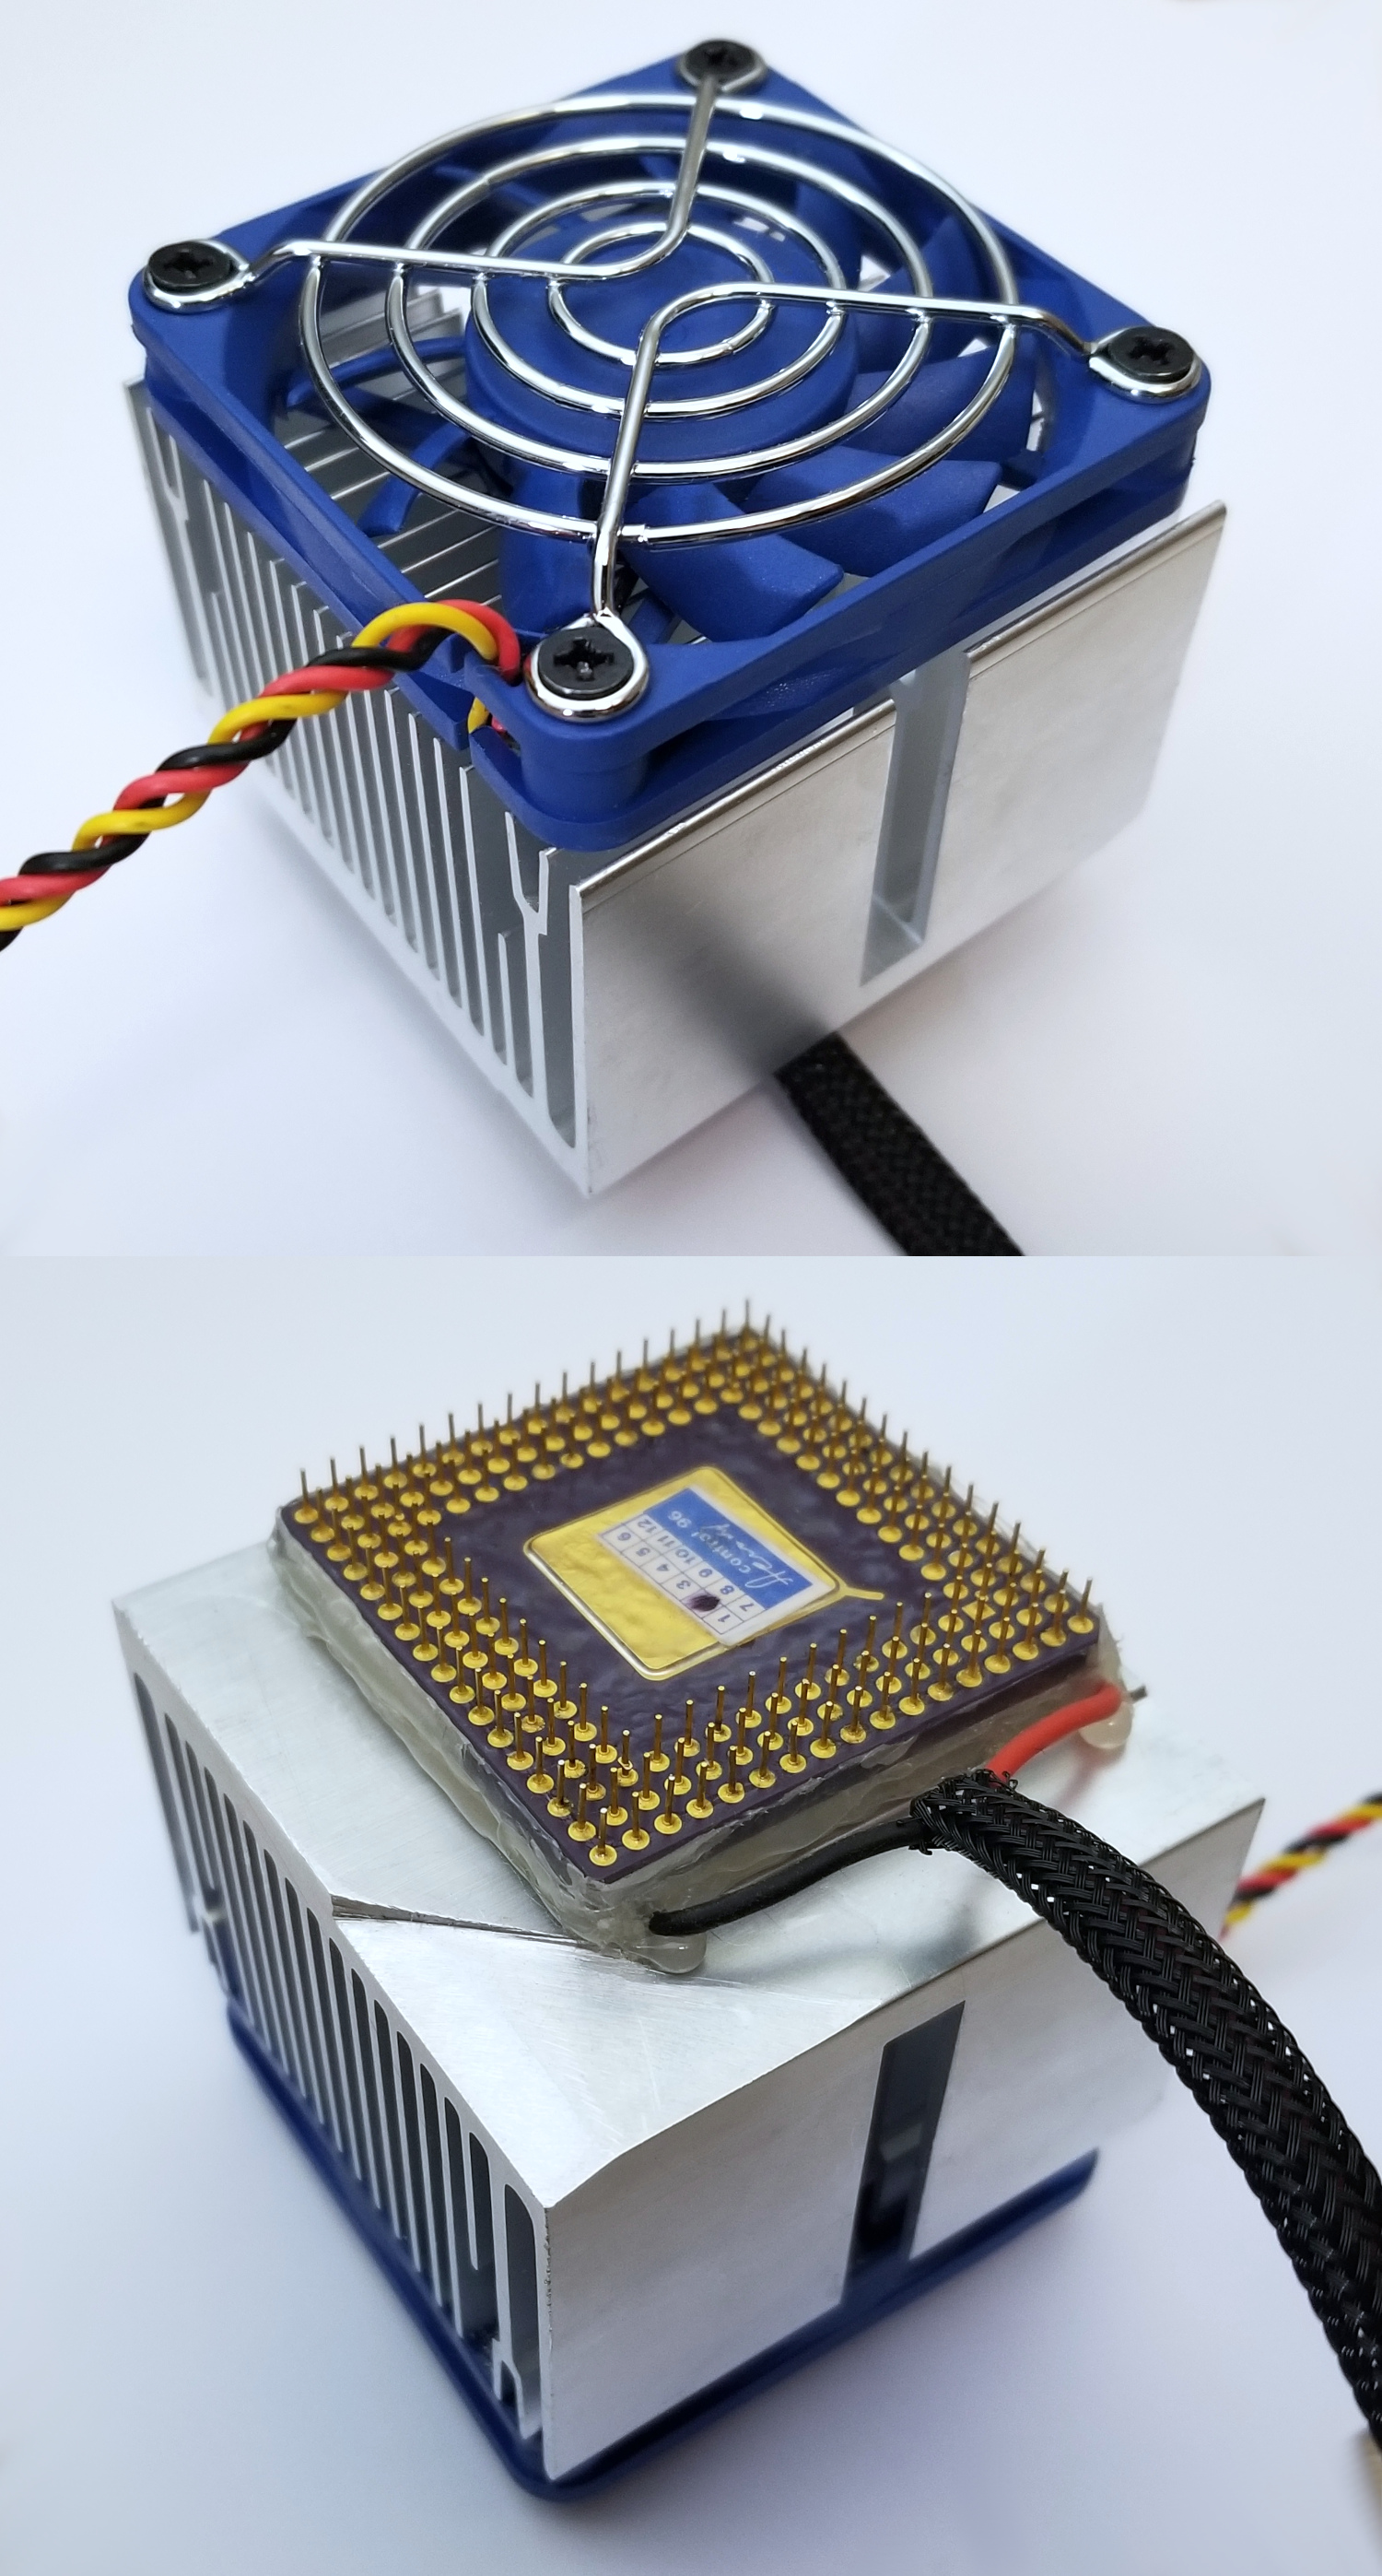 cpu_486_cooling_assembly_4.jpg